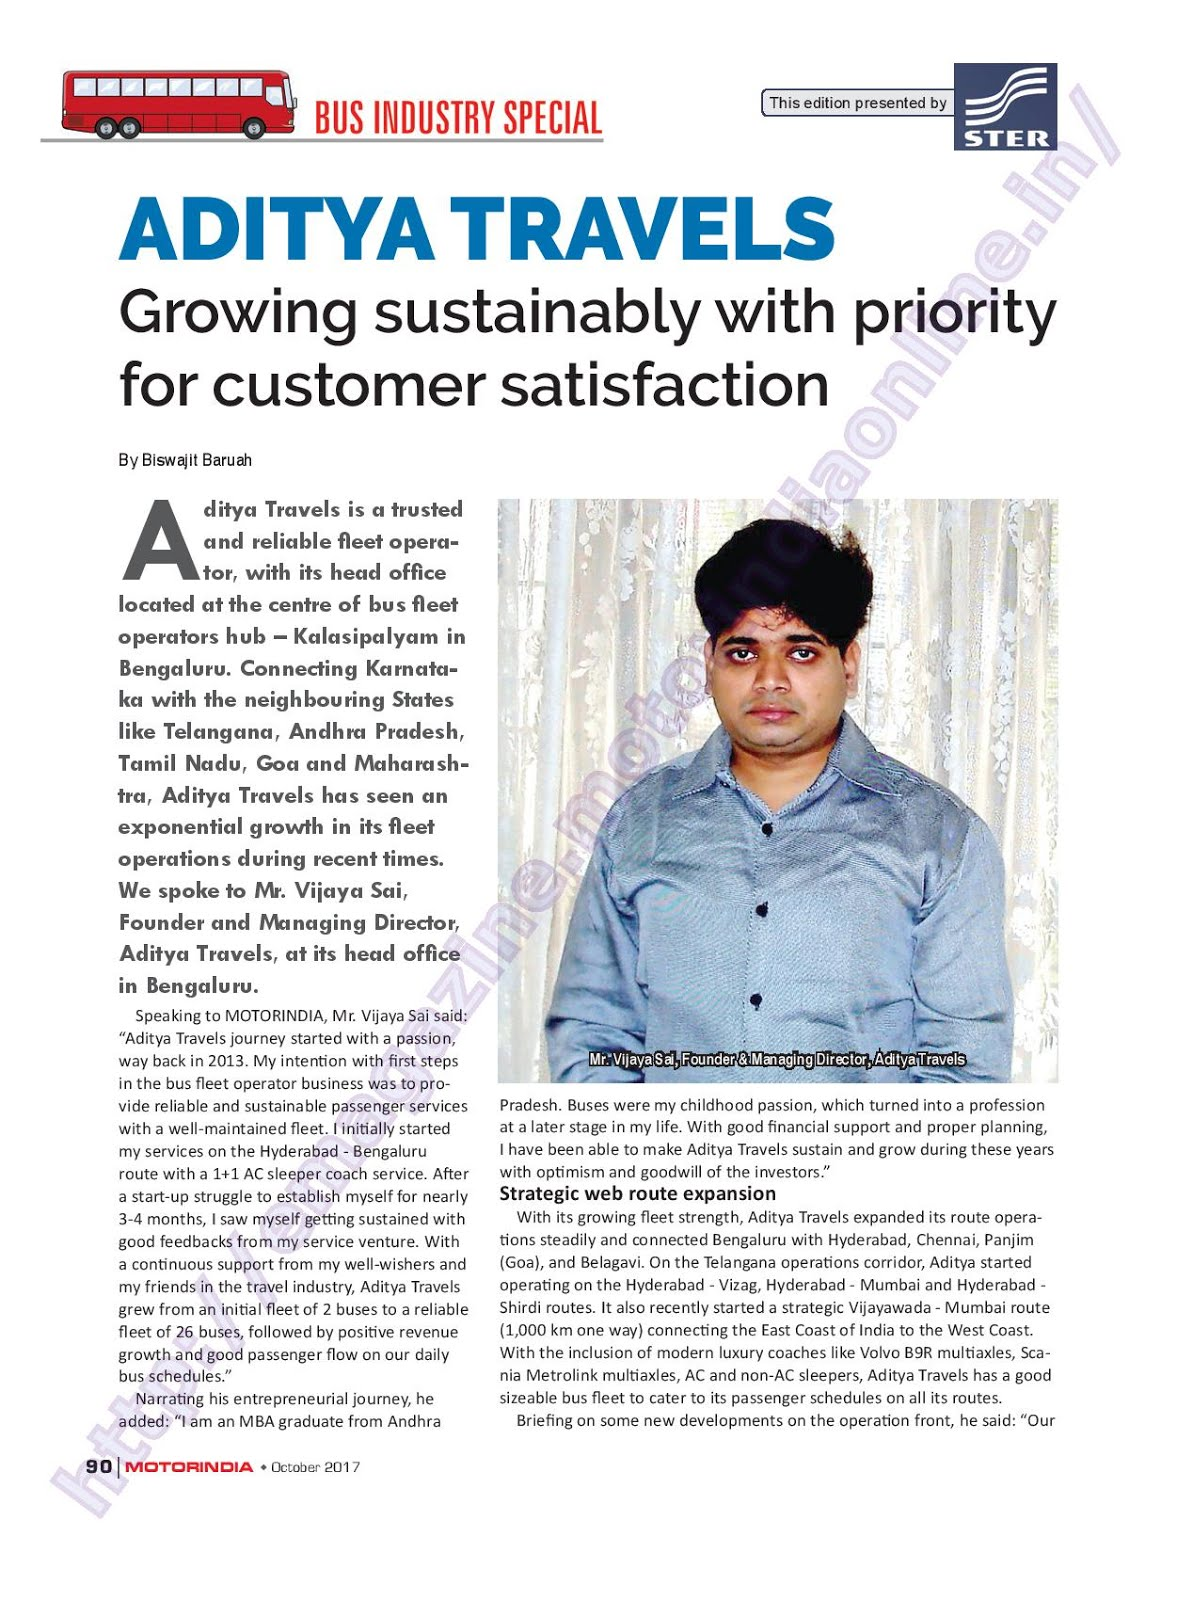 MOTOR INDIA ARTICLE 19 : ADITYA TRAVELS